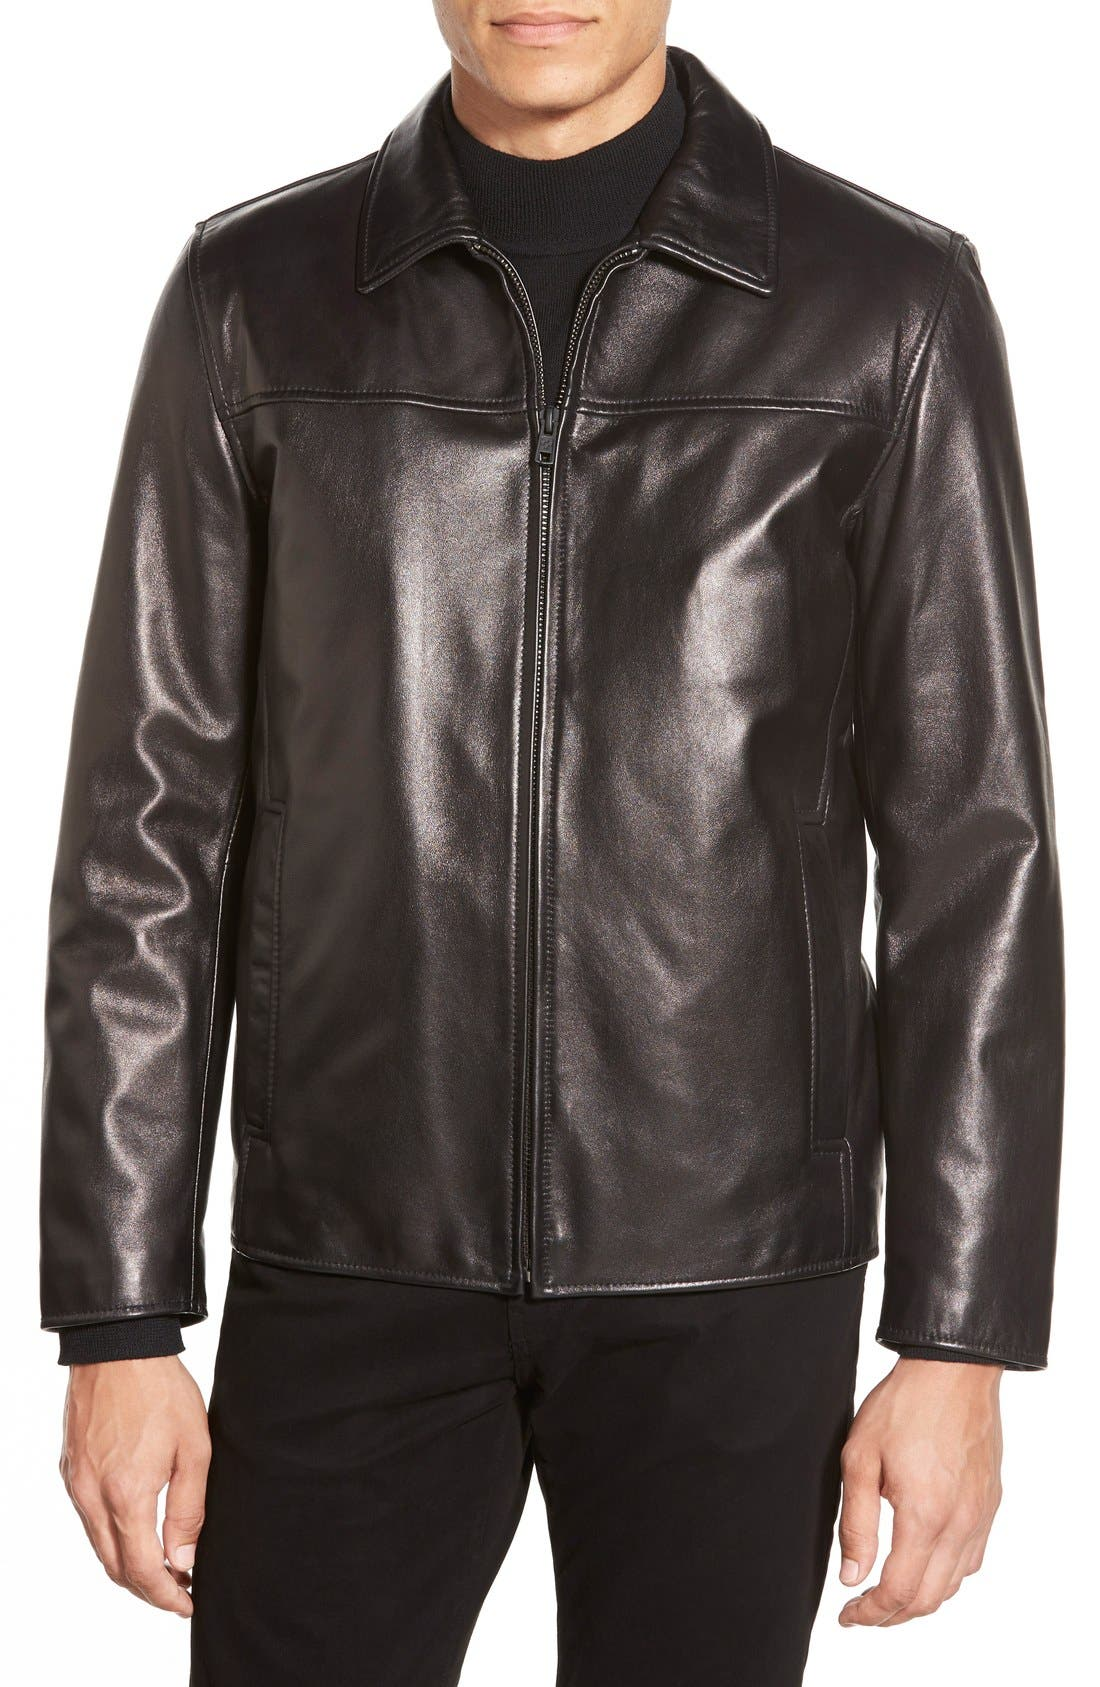 Leather Jacket with Removable Liner,                             Main thumbnail 1, color,                             001